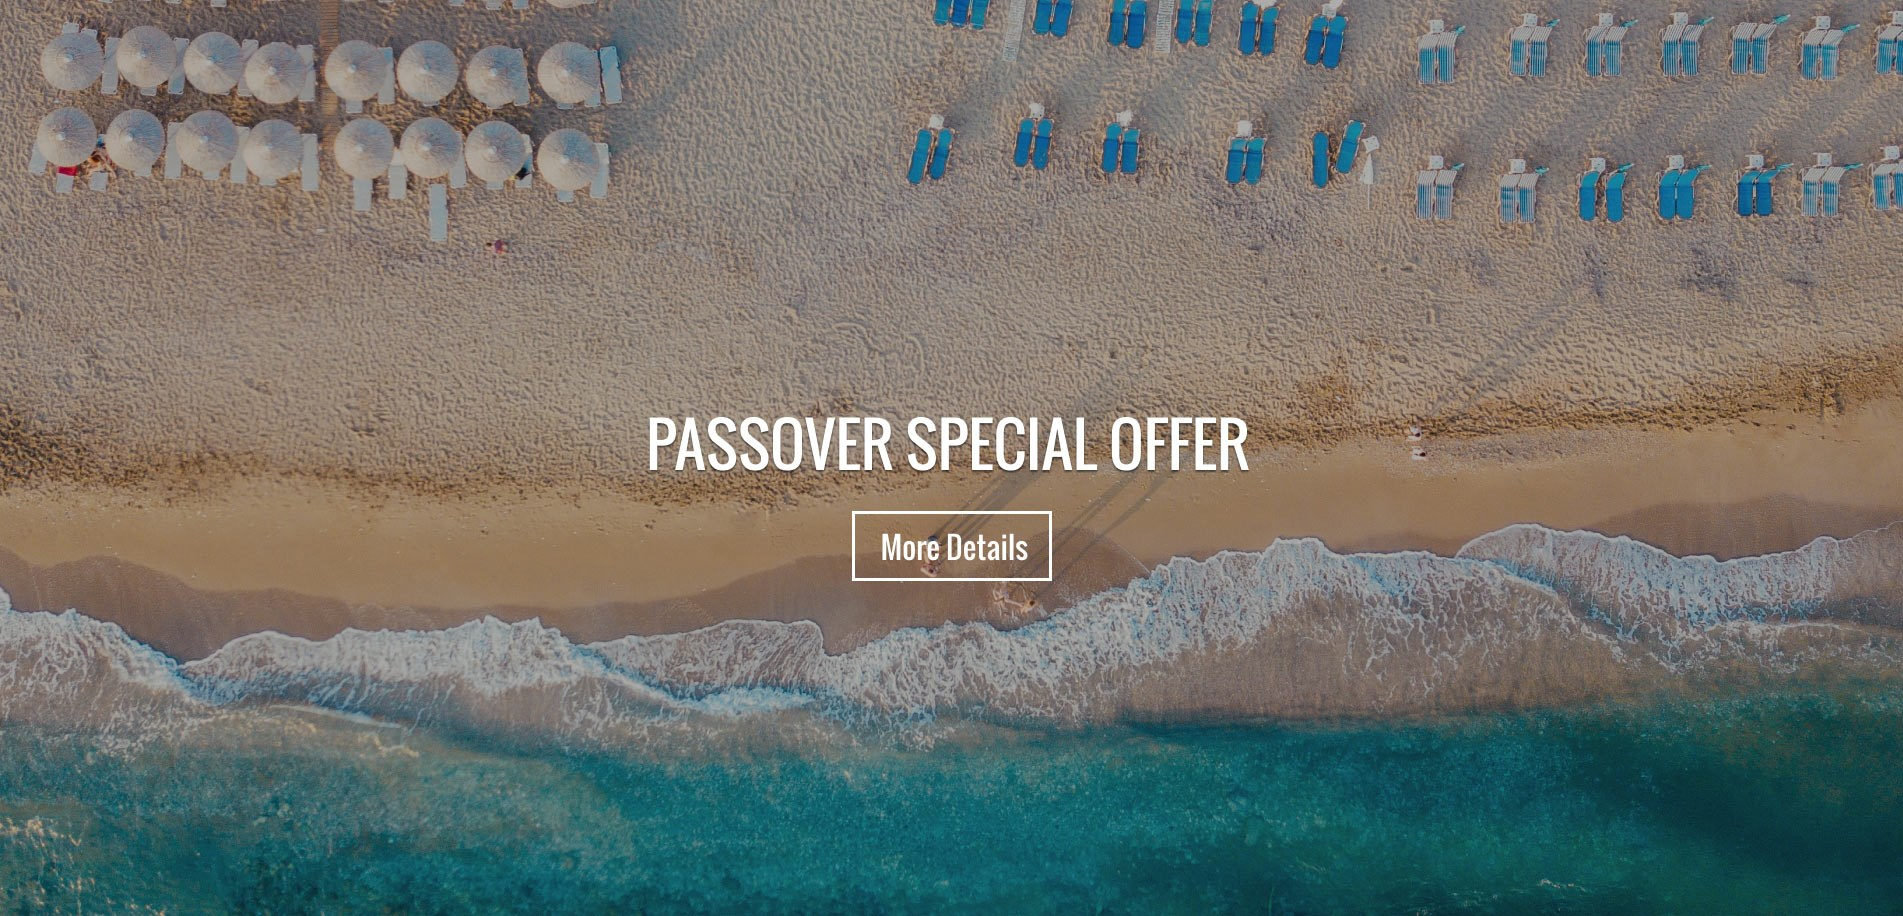 Passover special offer